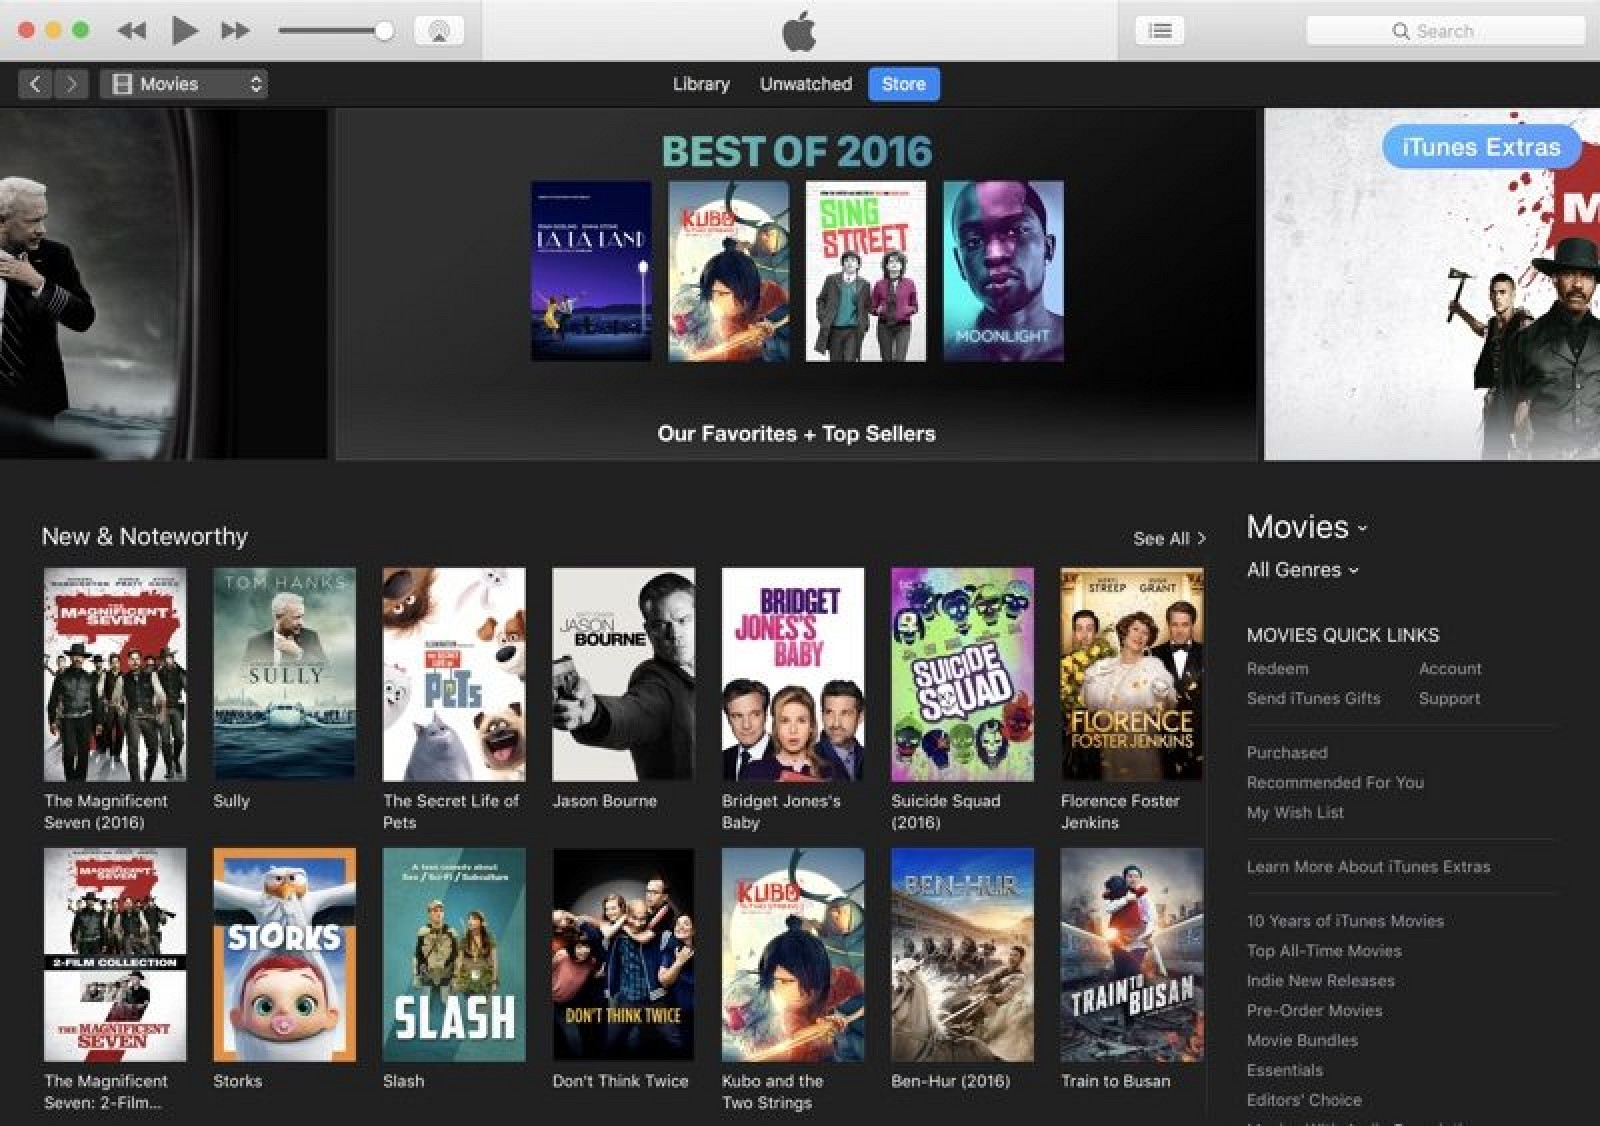 itunes movies market share losing out against rivals say